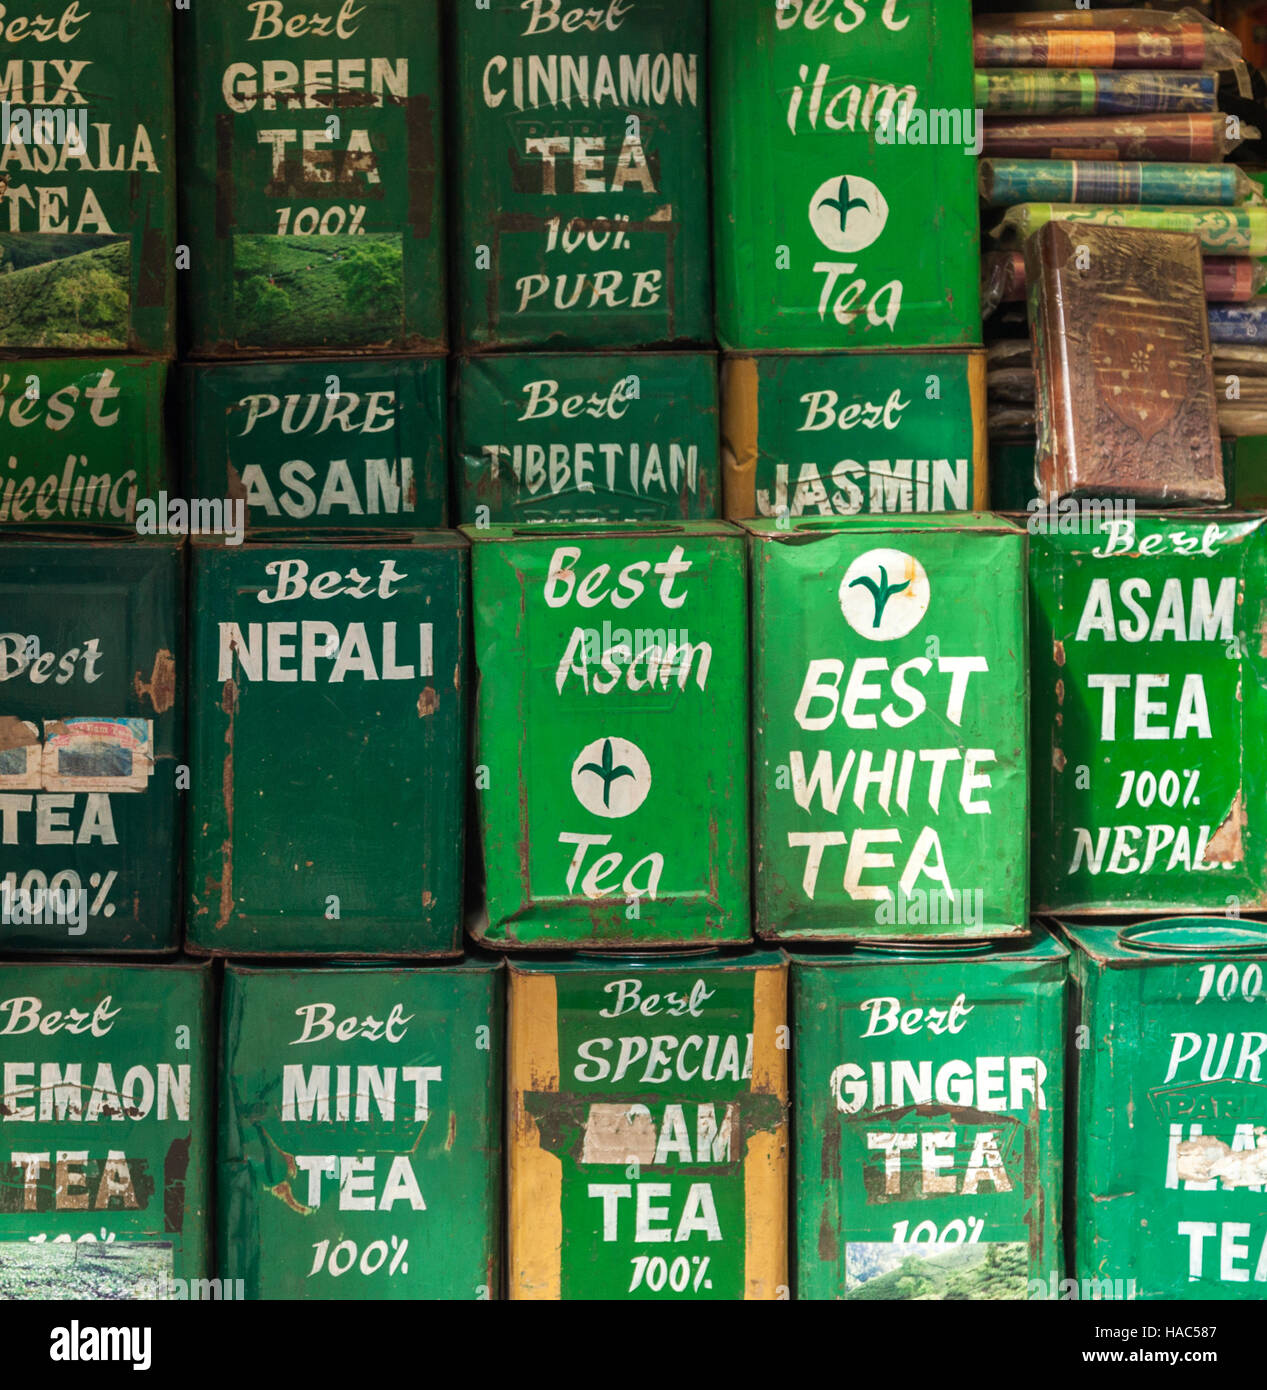 Tins of different teas for sale in a shop in Kathmandu - Stock Image